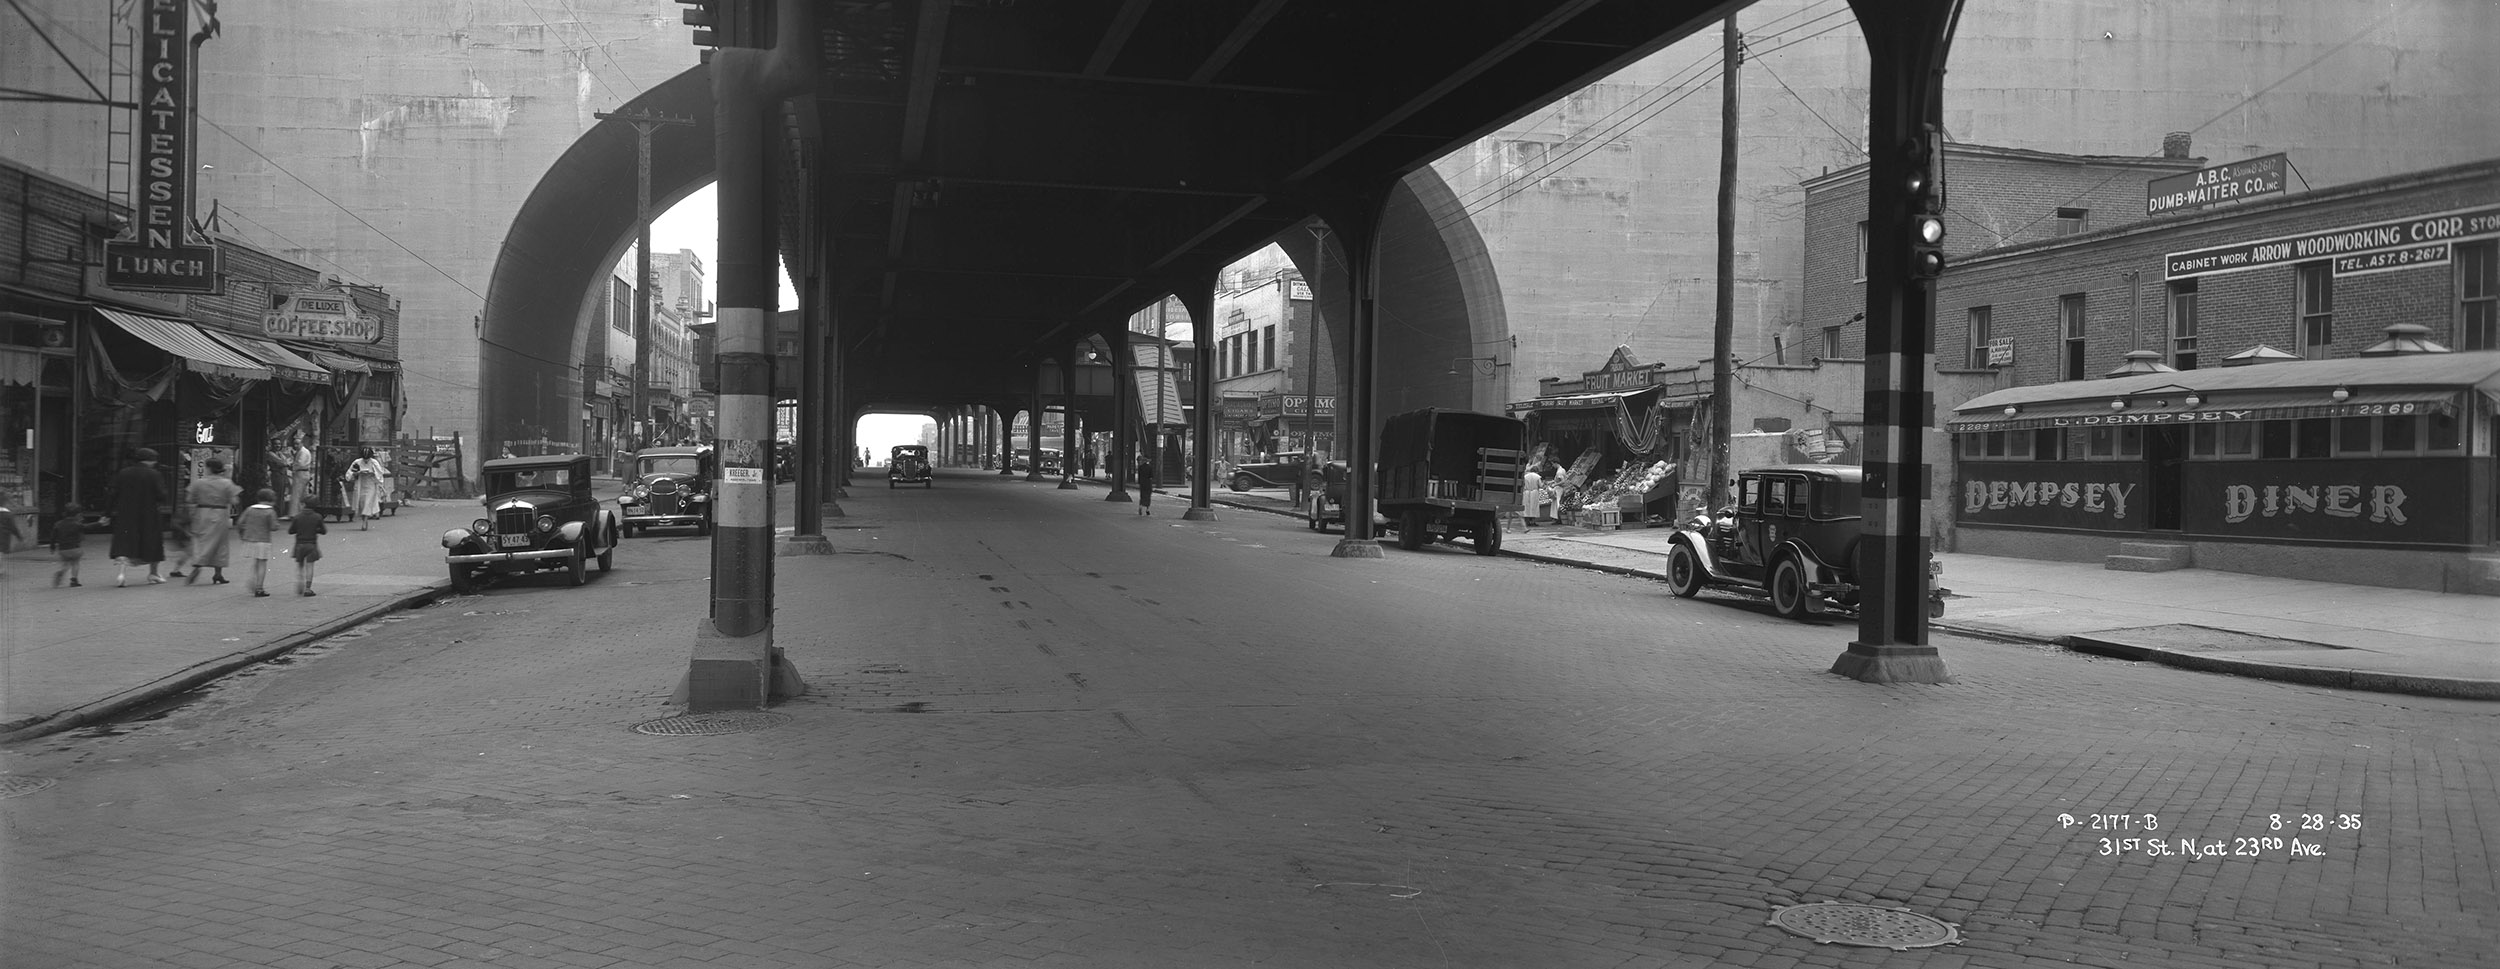 Under the elevated train, 31st Street, looking north at 23rd Avenue, Queens, August 28, 1935. Borough President Queens Collection, NYC Municipal Archives.